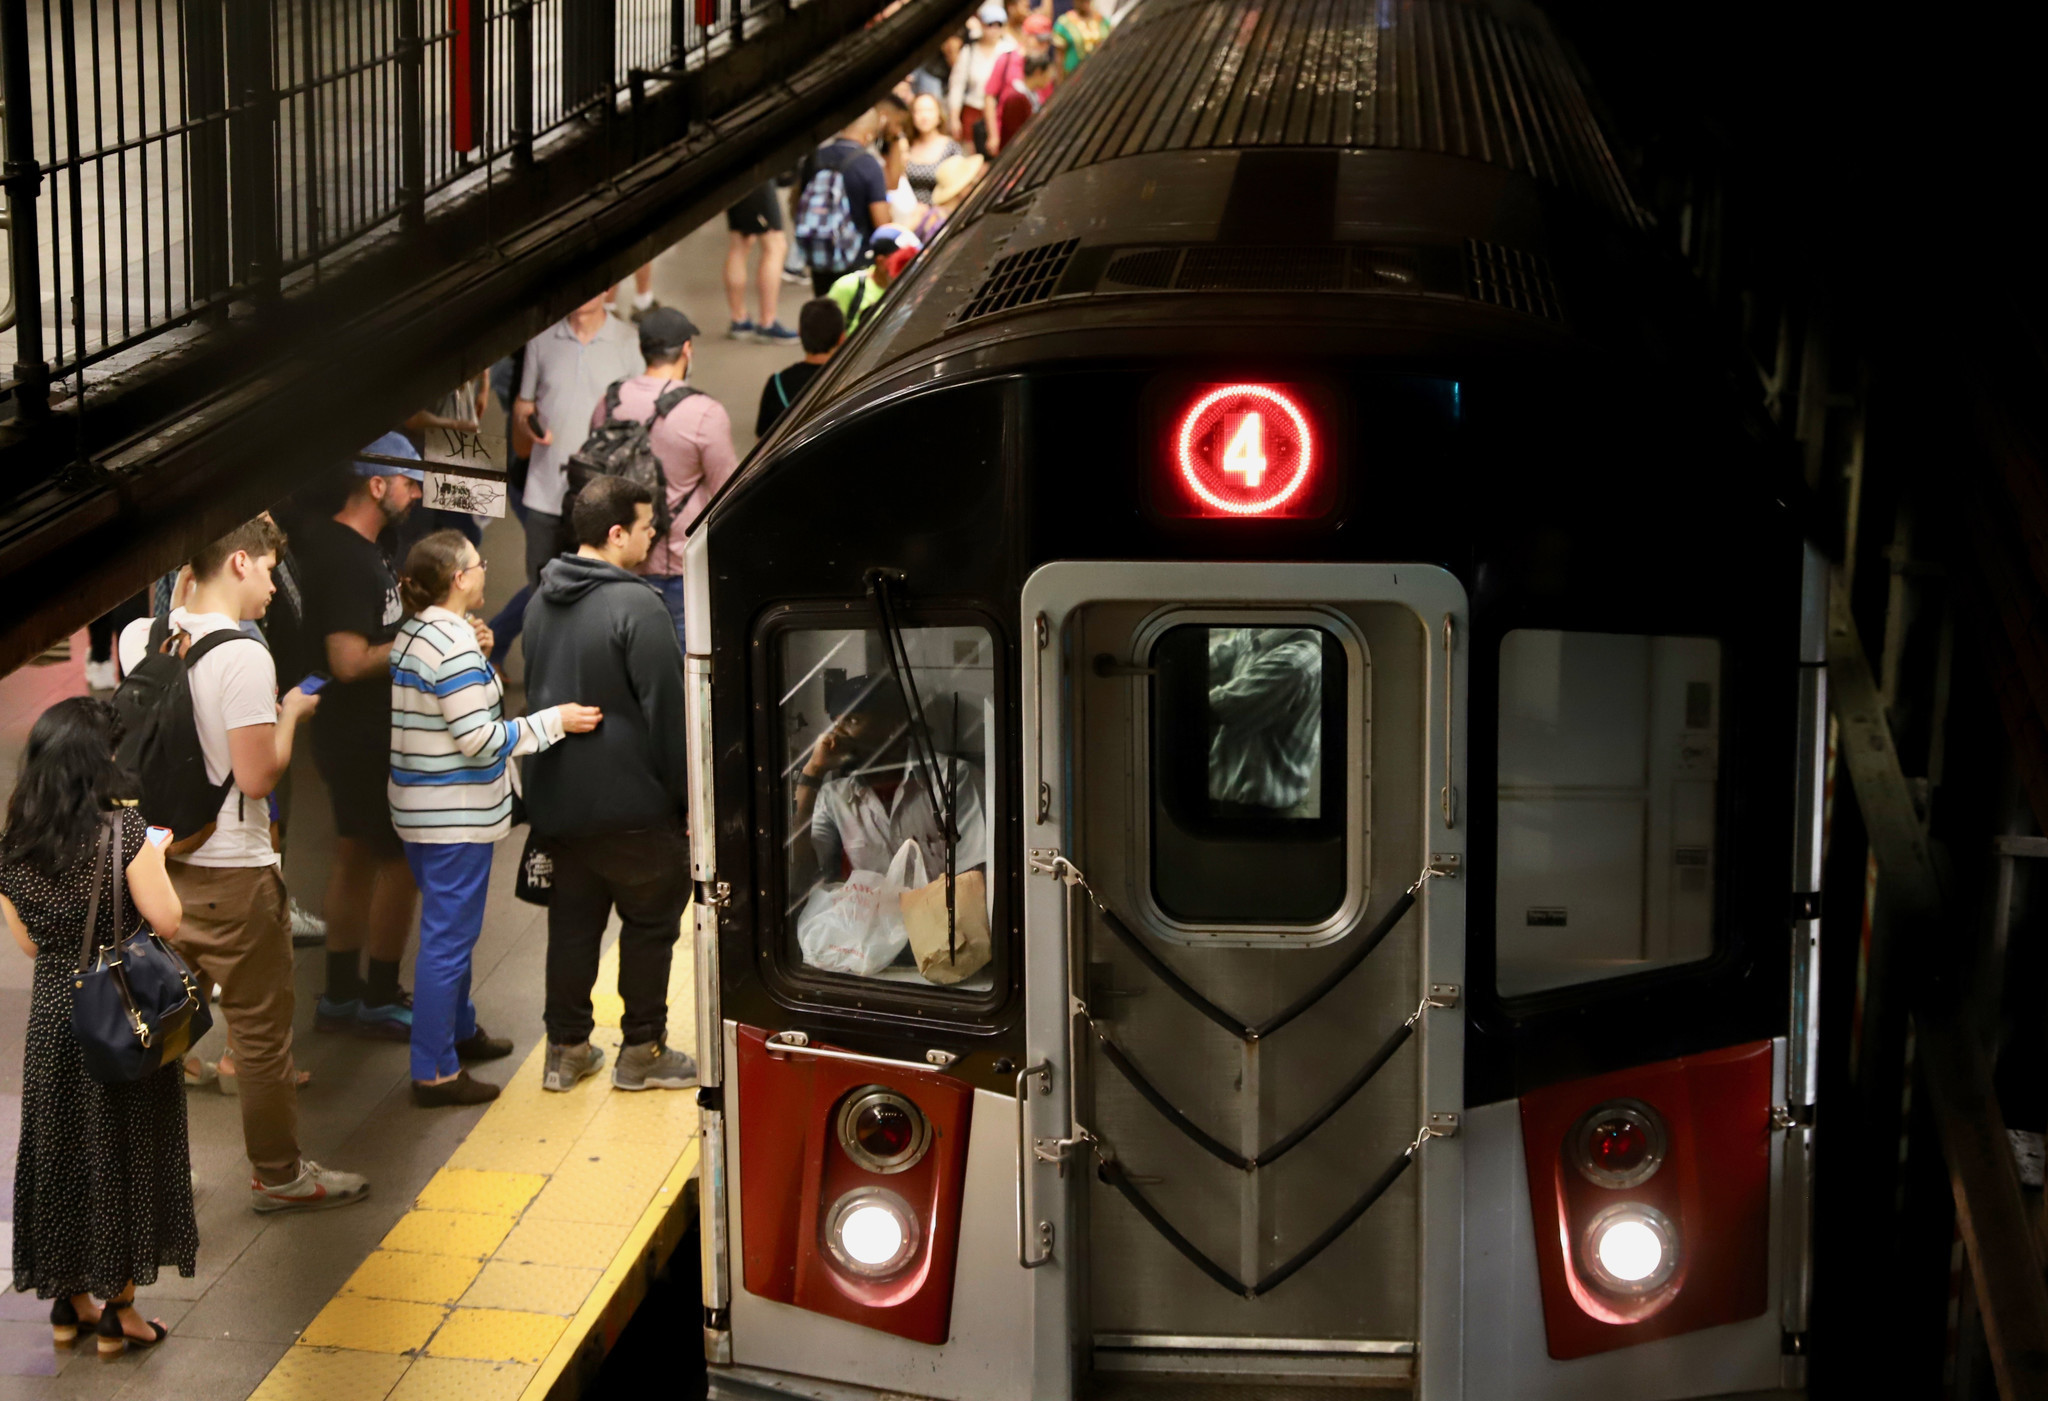 Homeless man found dead on Manhattan subway tracks, may have been struck by express train